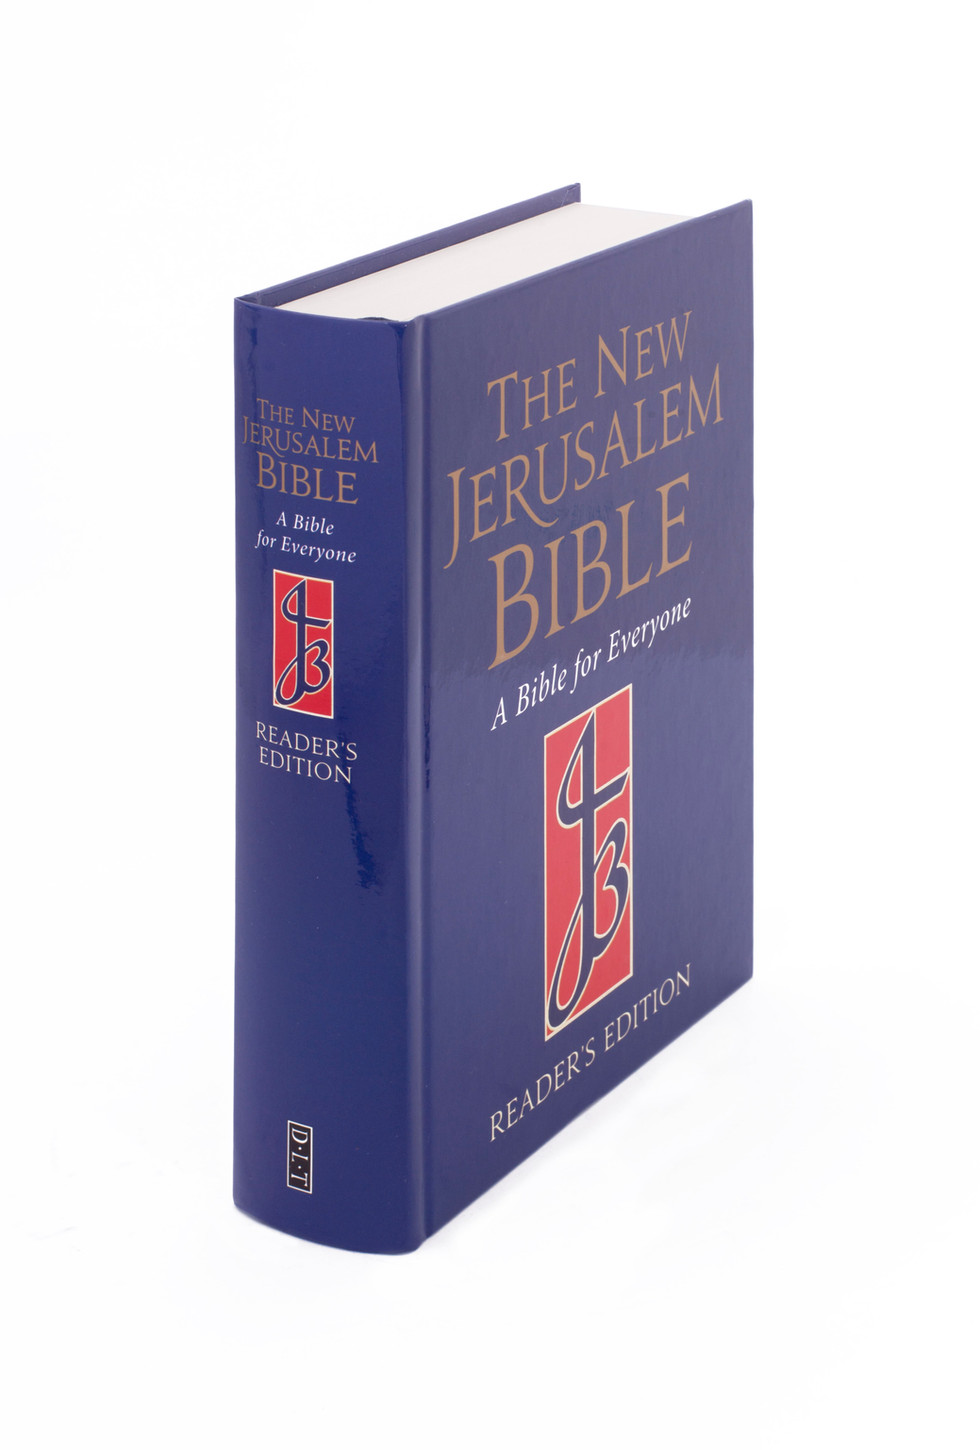 NJB Reader's Edition Cased Bible